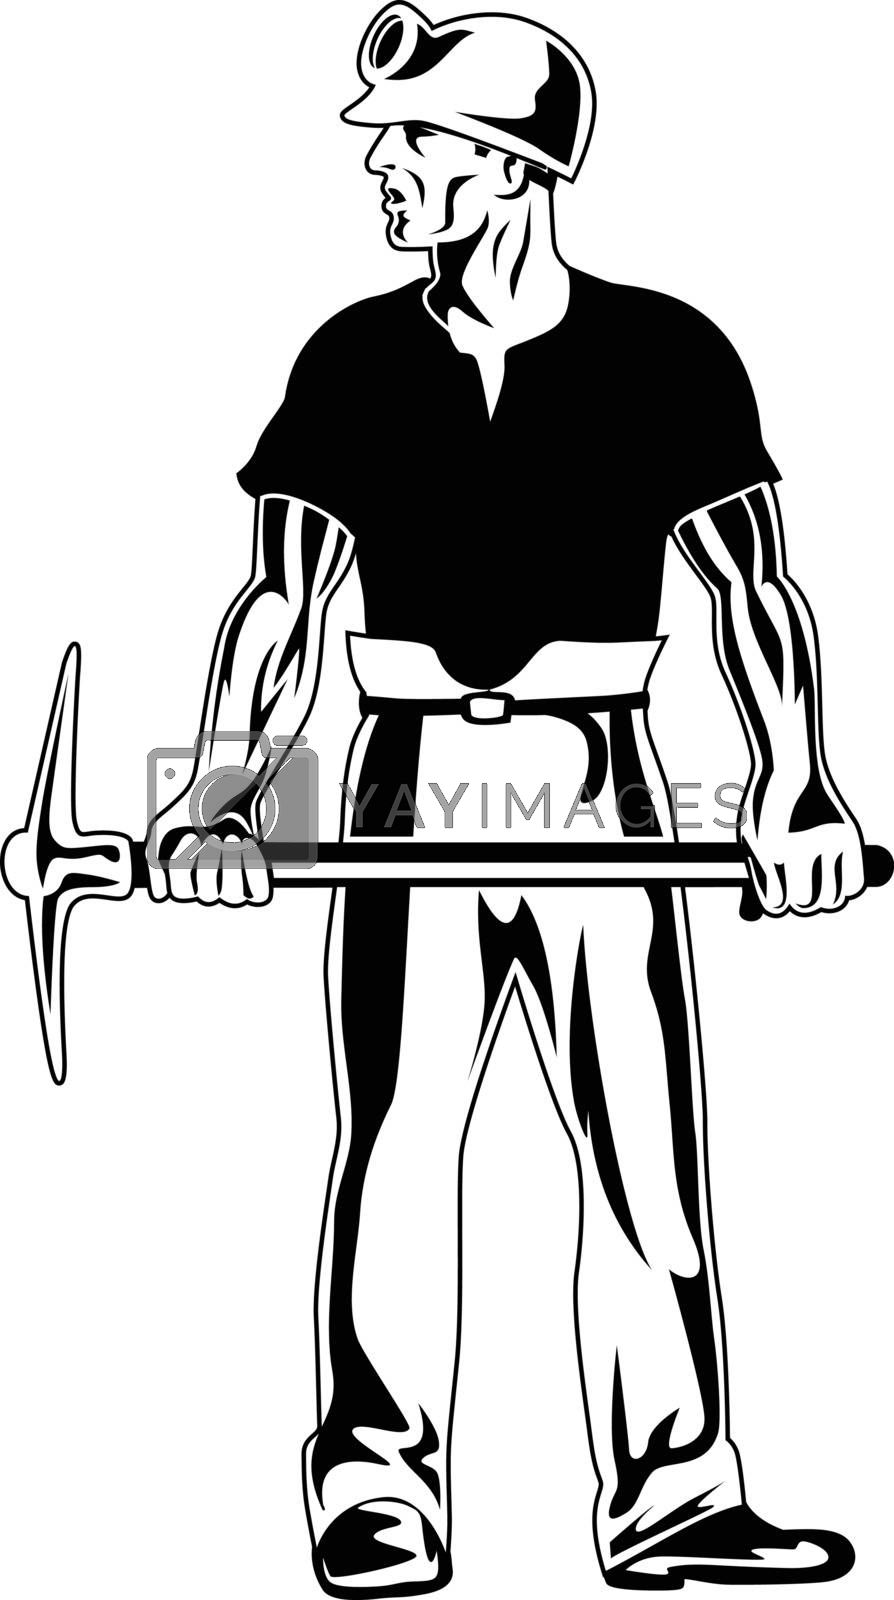 Stencil illustration of coal miner wearing hard hat and holding pick ax standing viewed from front on isolated background done in black and white retro style.